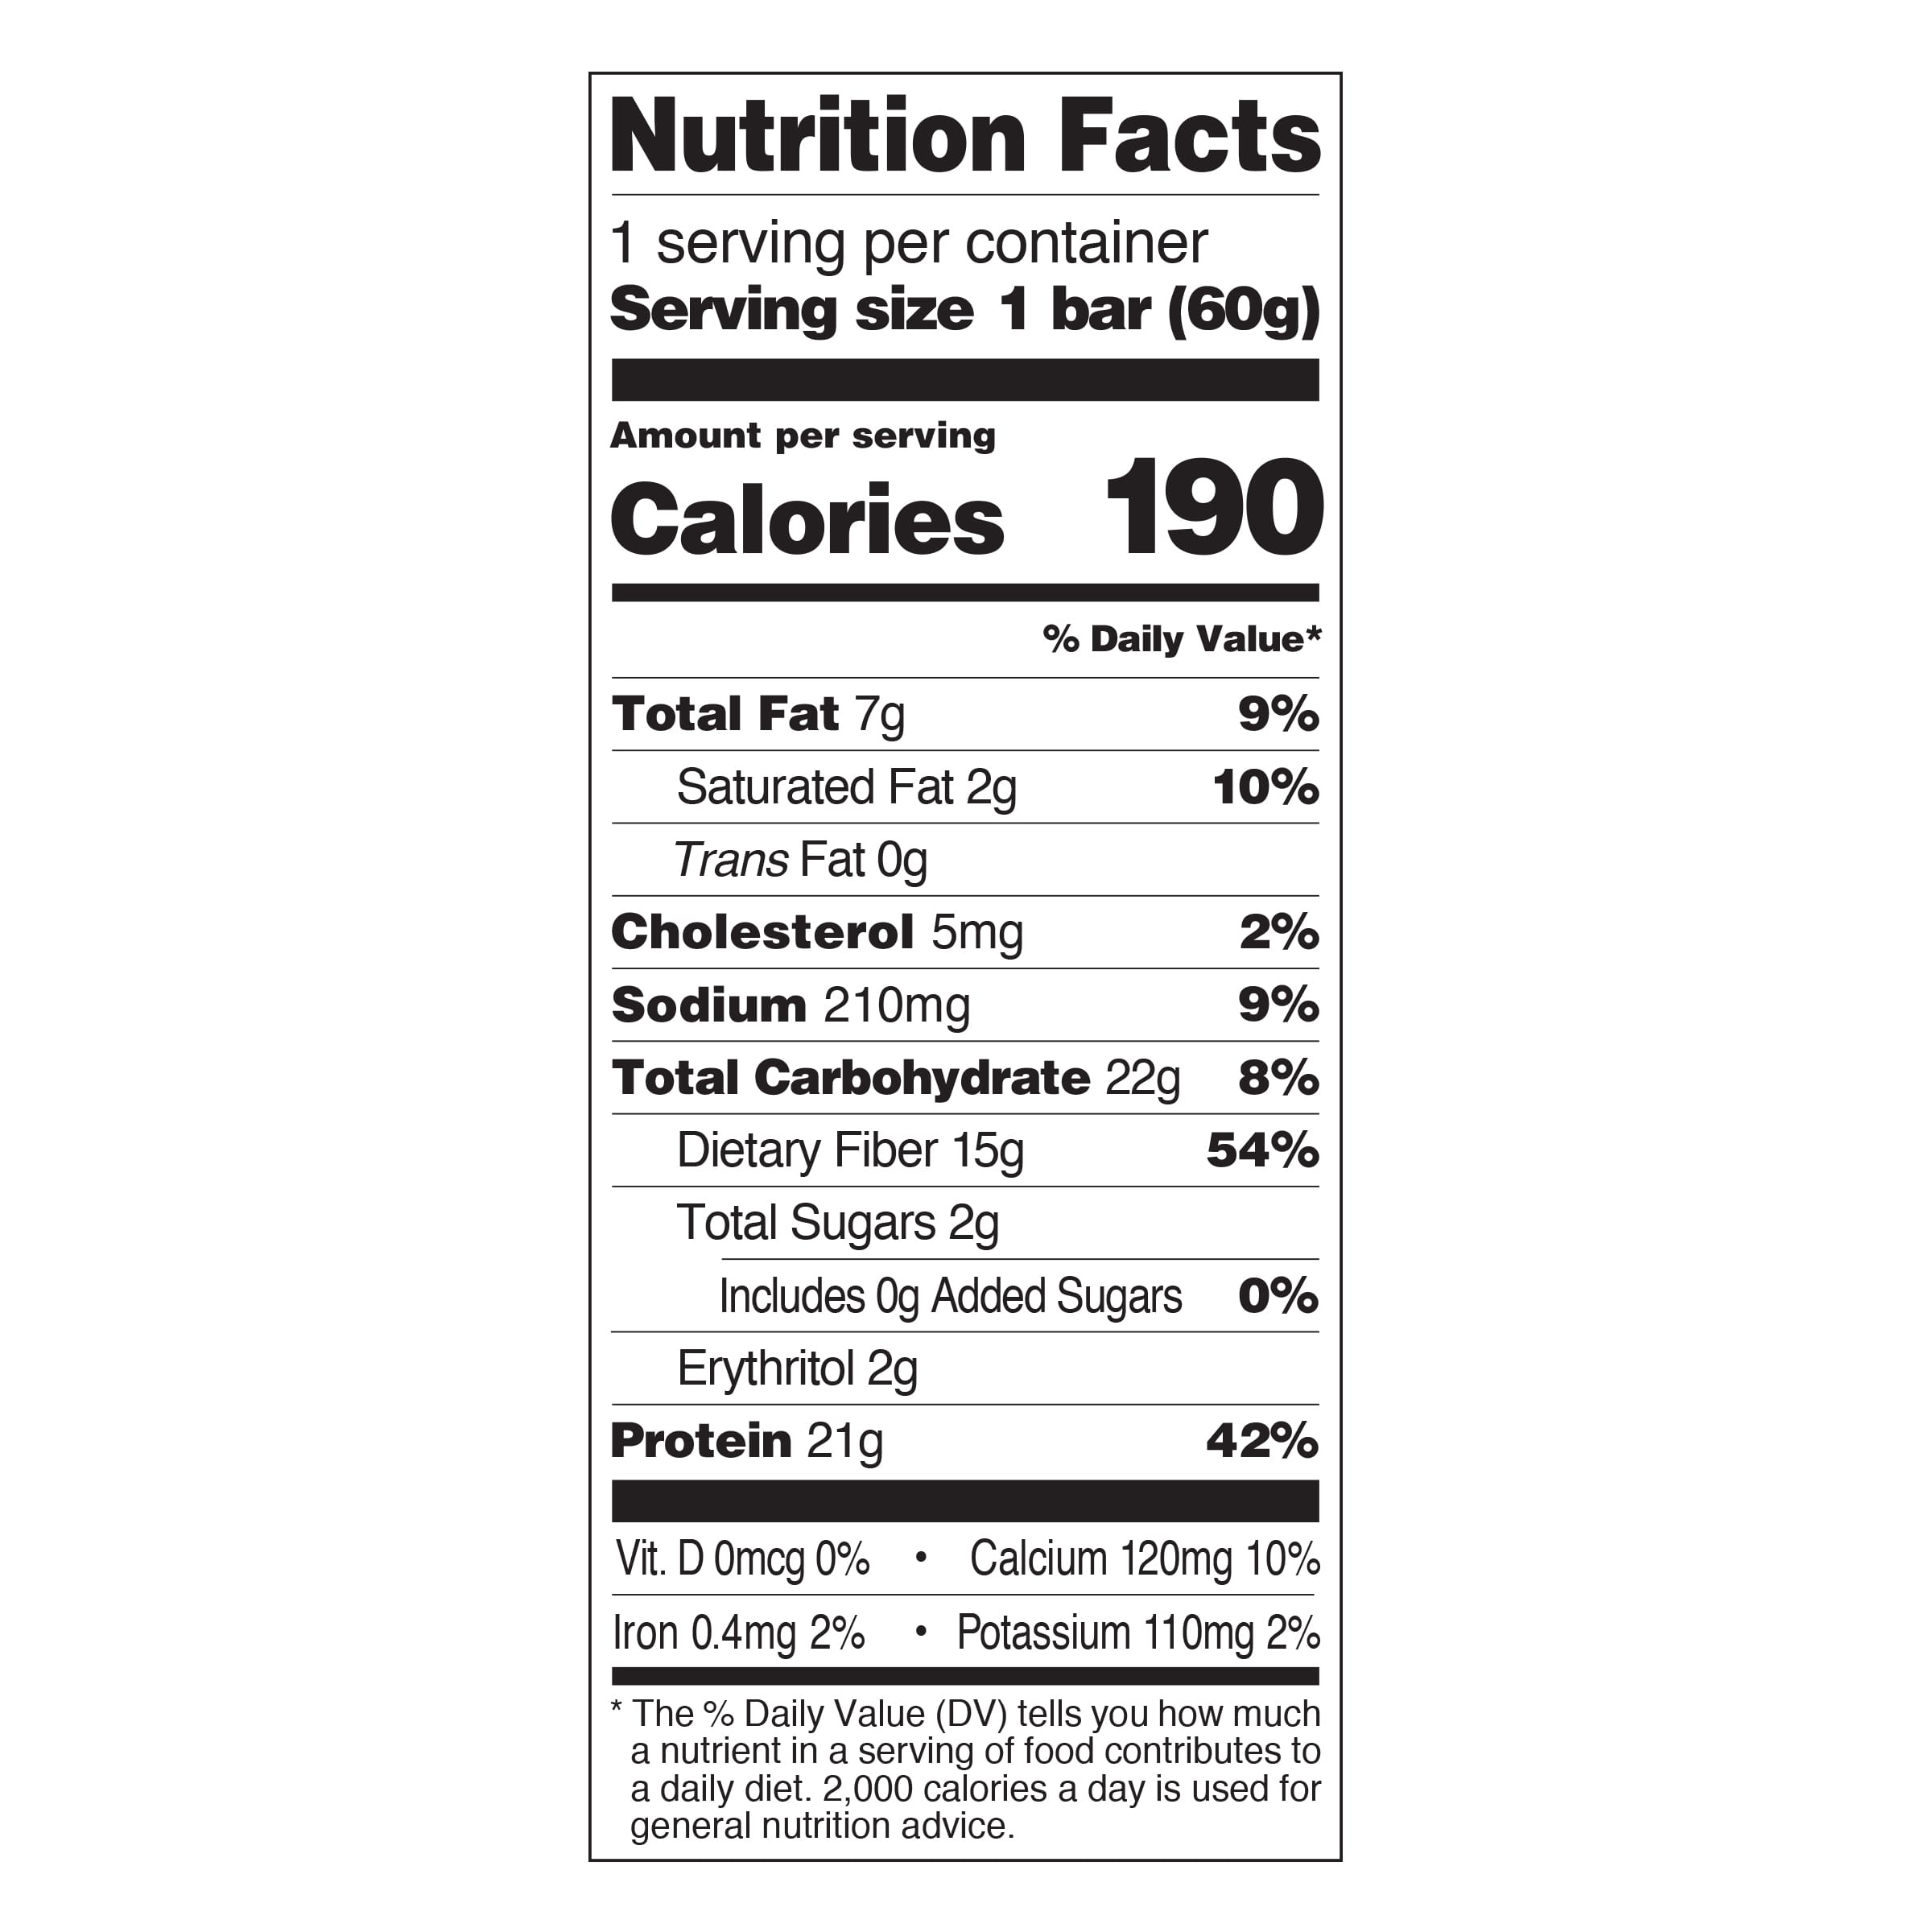 Blueberry Muffin Nutrition